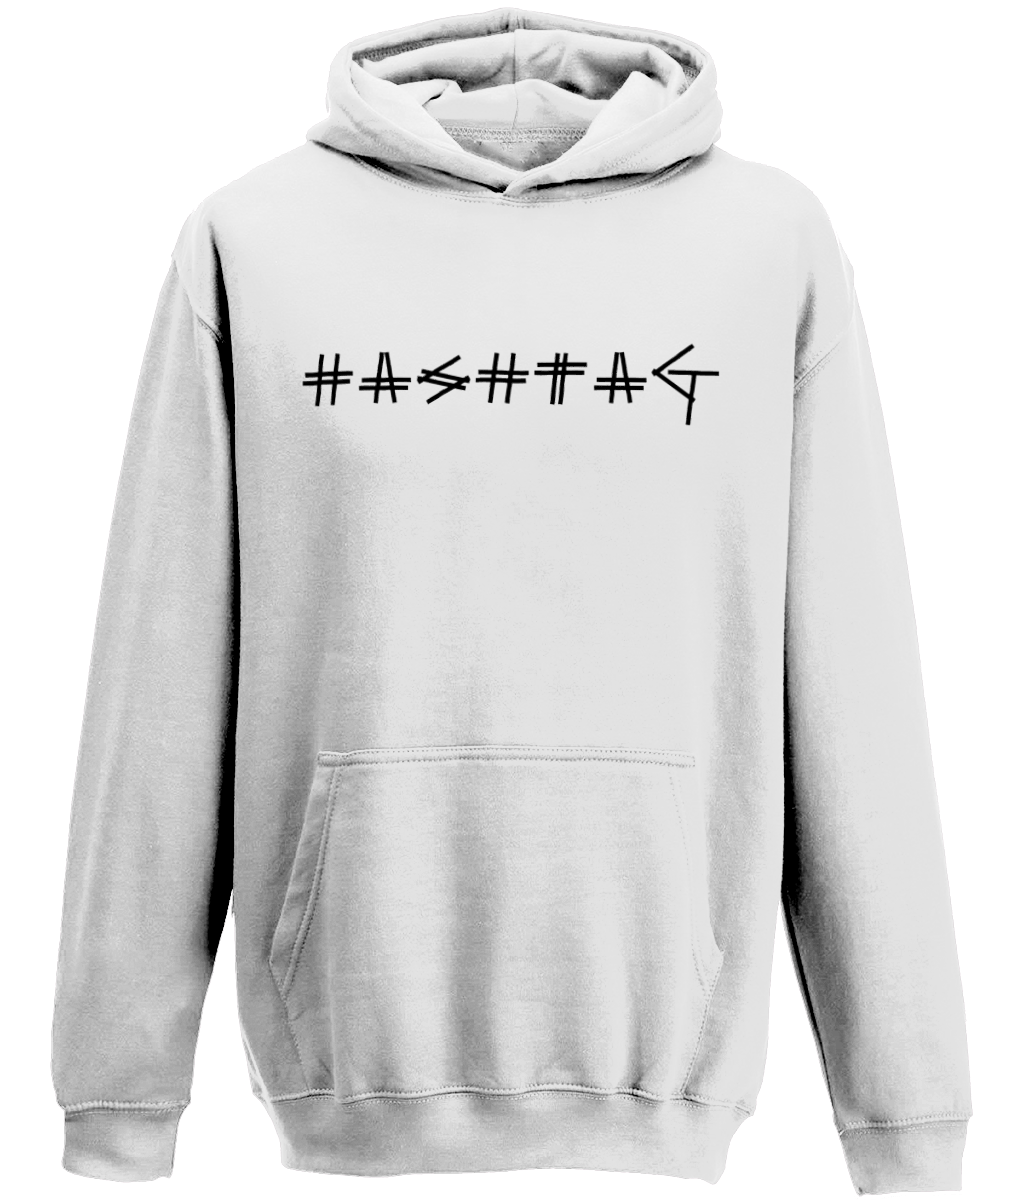 Hashtag - youth's hoodie